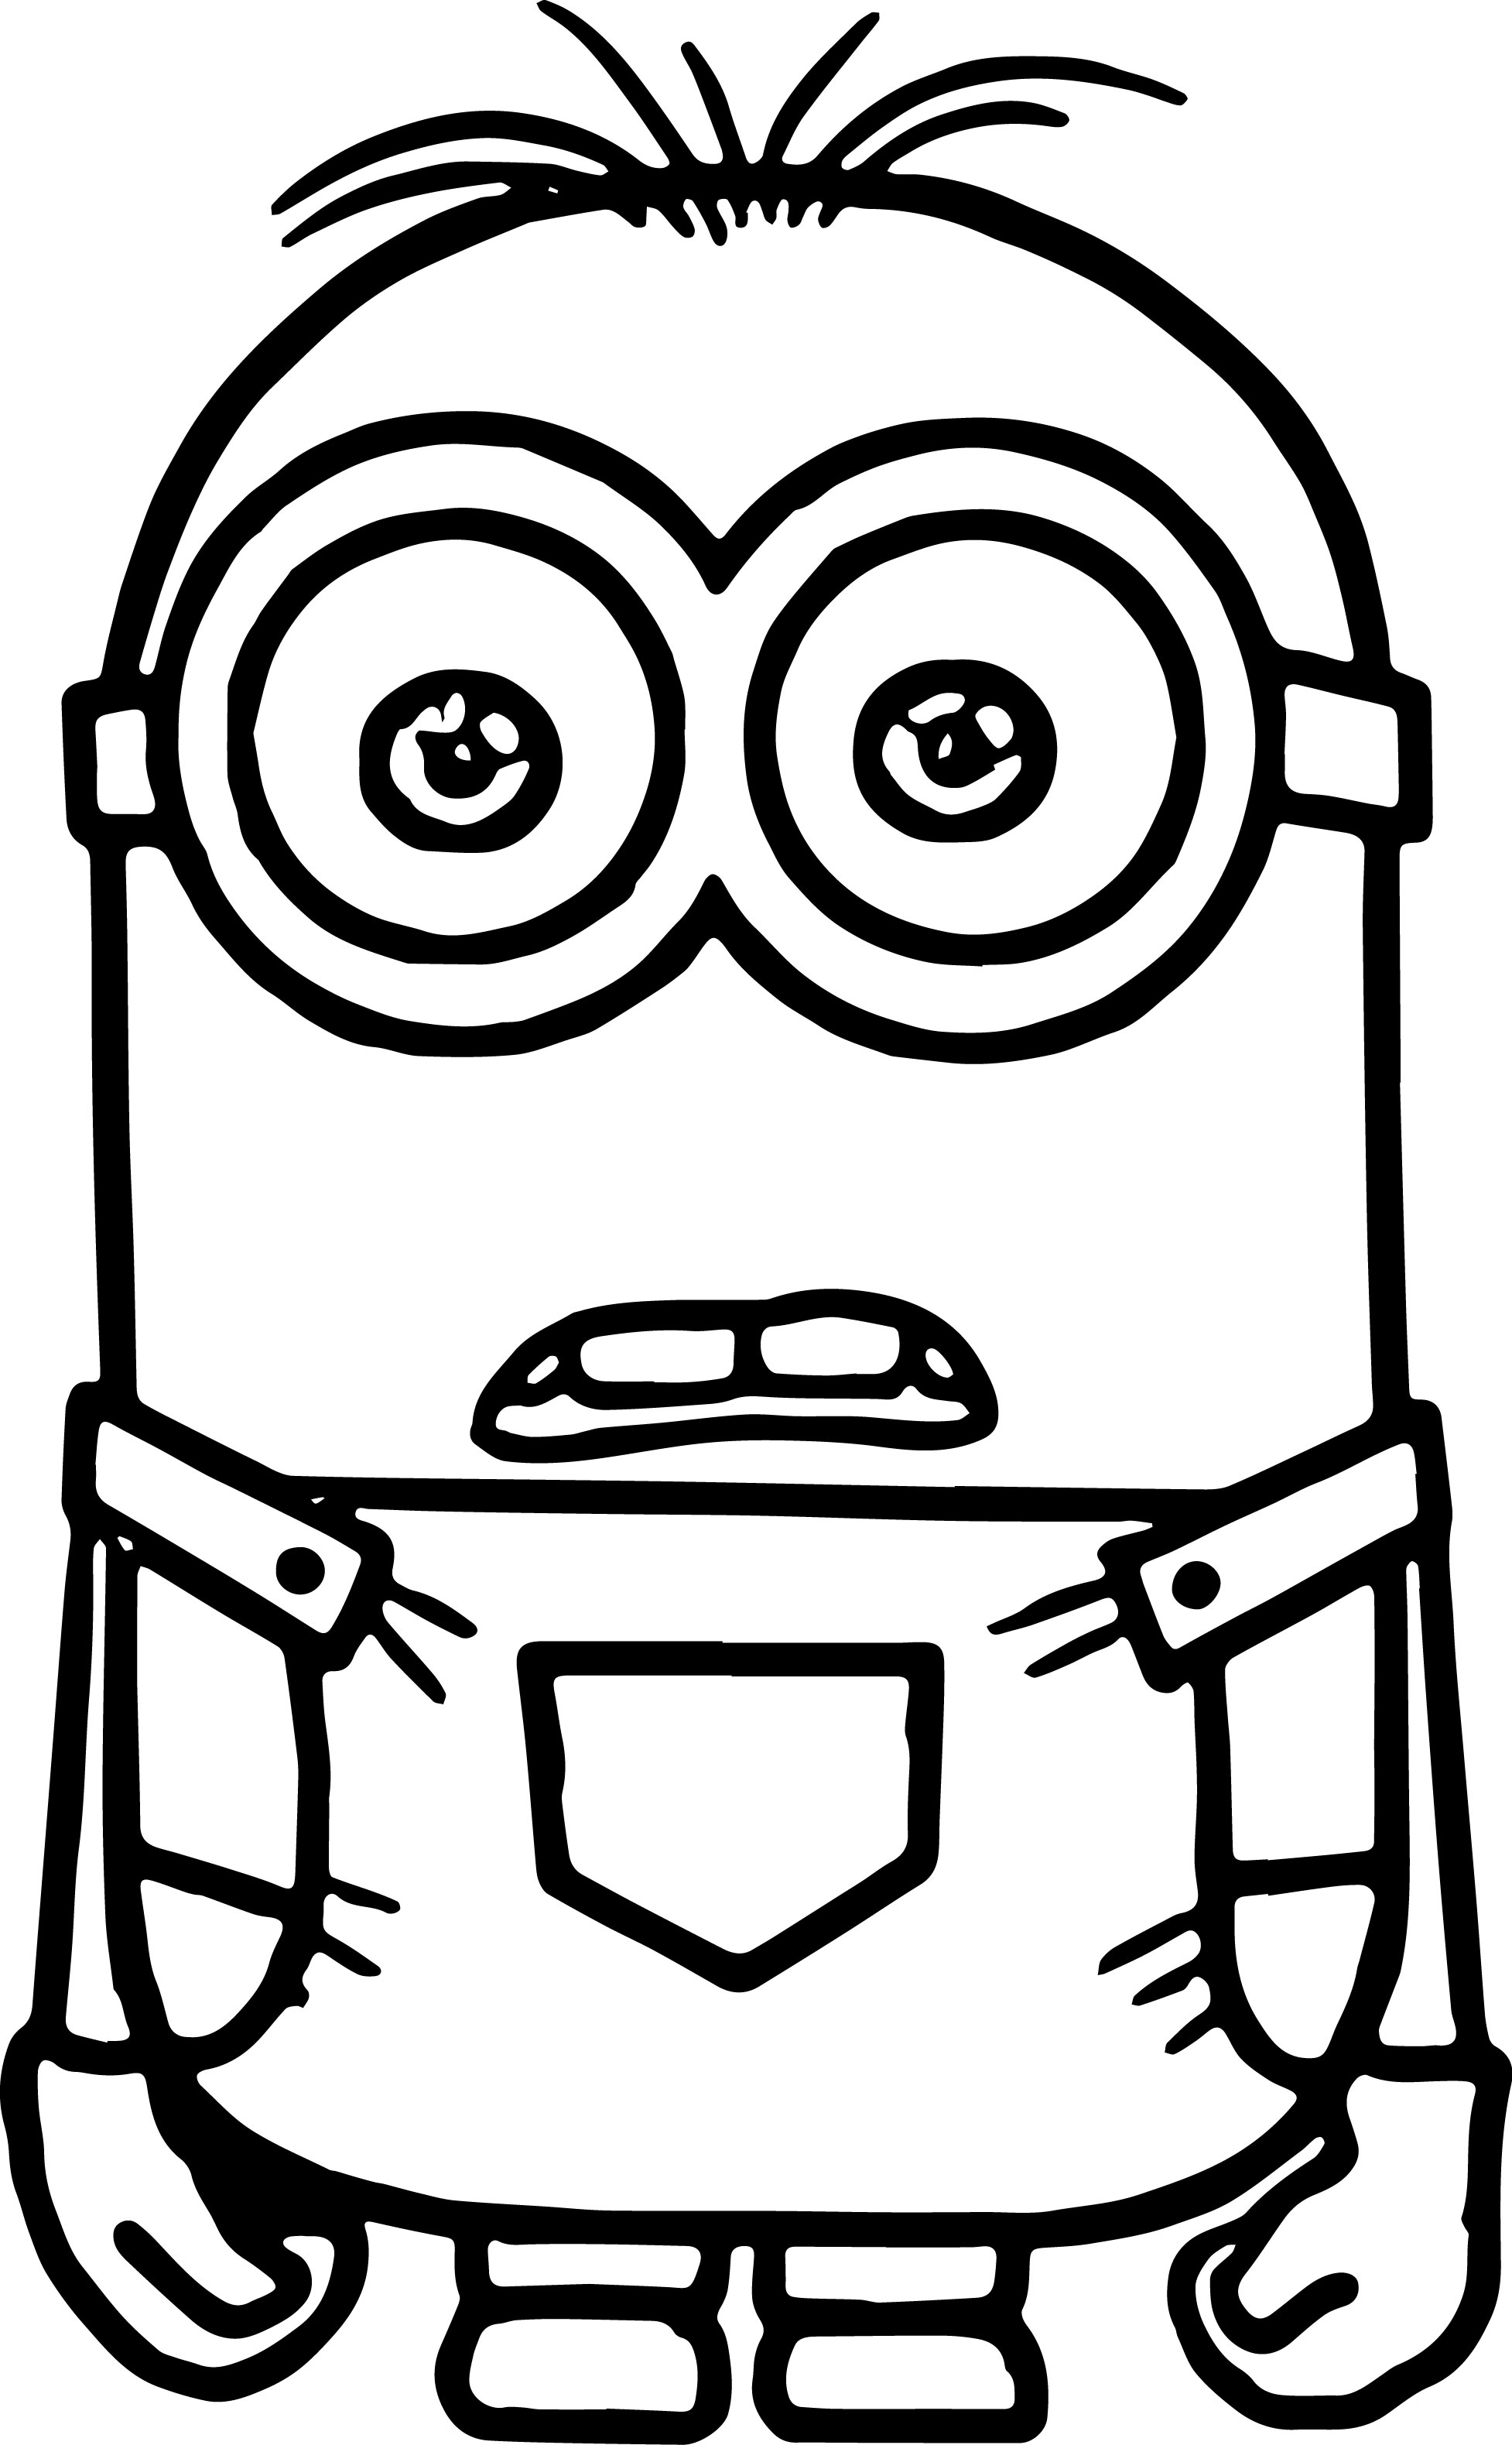 Kangaroo colouring page 2 - Perfect Minion Coloring Page